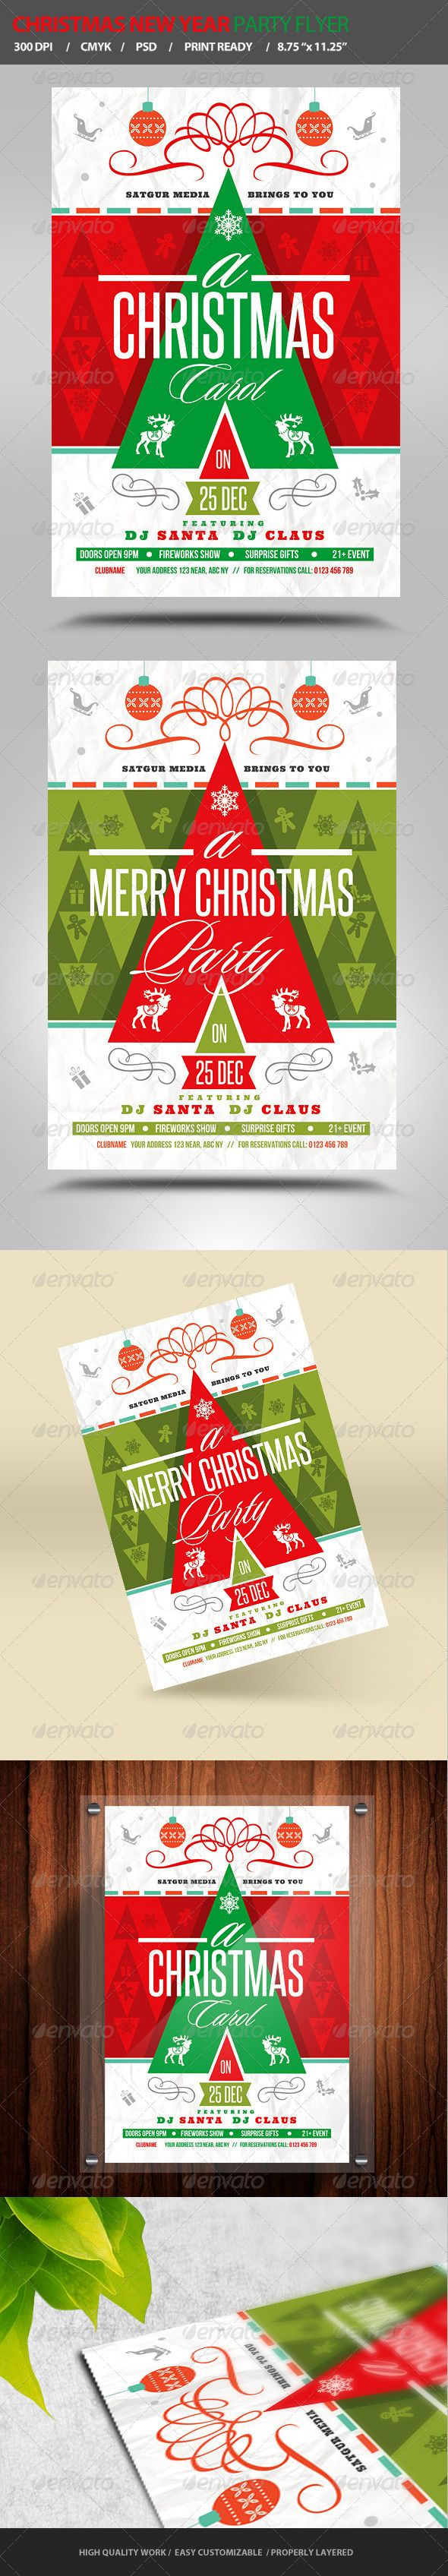 "Christmas / New Year Party Flyer #GraphicRiver SPECIFICATIONS: ================ 1) Dimensions: 4.25"" by 6.25"" in size with bleeds 2) Resolution: 300 dpi CMYK / ready for print 3) Editable fonts/text 4) Easy to change colors 5) JPEGS included 6) Properly Layered 2 Photoshop Files 7) Help file included Multiple color options FONTS USED: ============ Sloop, Ultra, Bebas Neue, and Steelfish Feel Free to contact me on sharma.thatsrohit.acc@gmail for any help. Hope you will like the stuff. Thanks…"